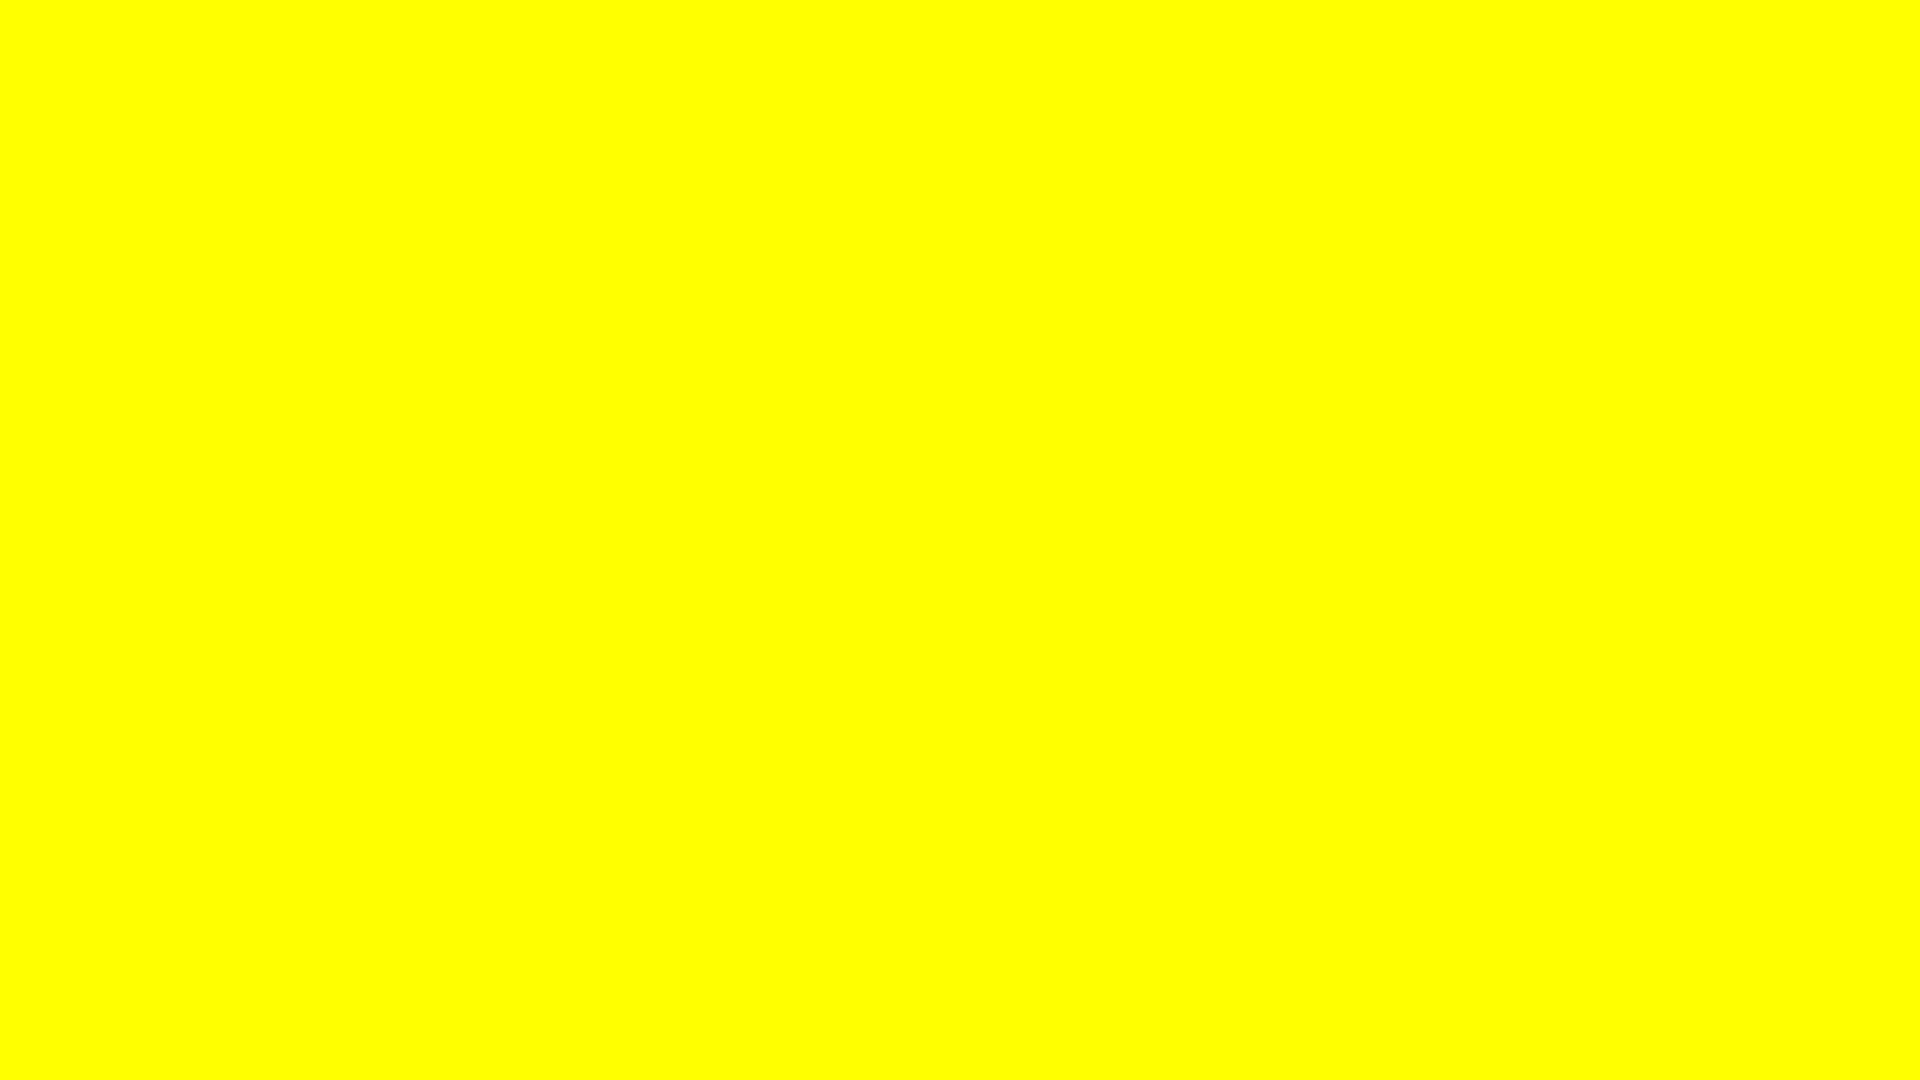 X Yellow Solid Color Background